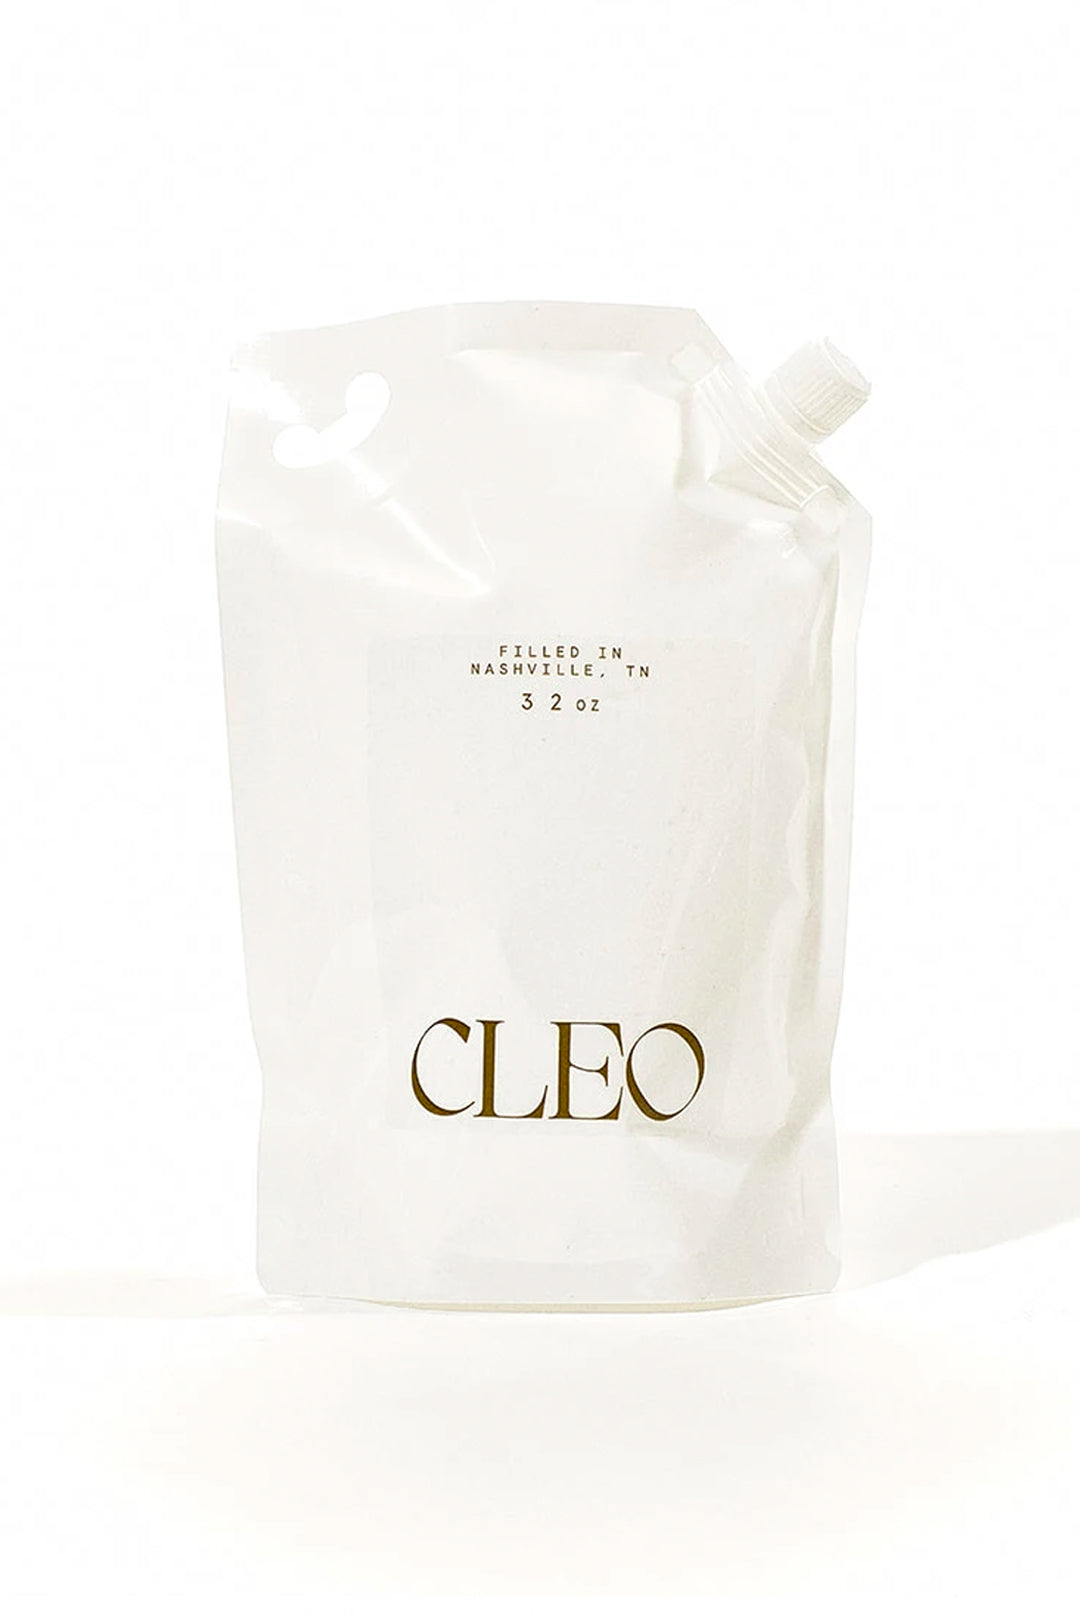 CLEO- Hand Soap Refill